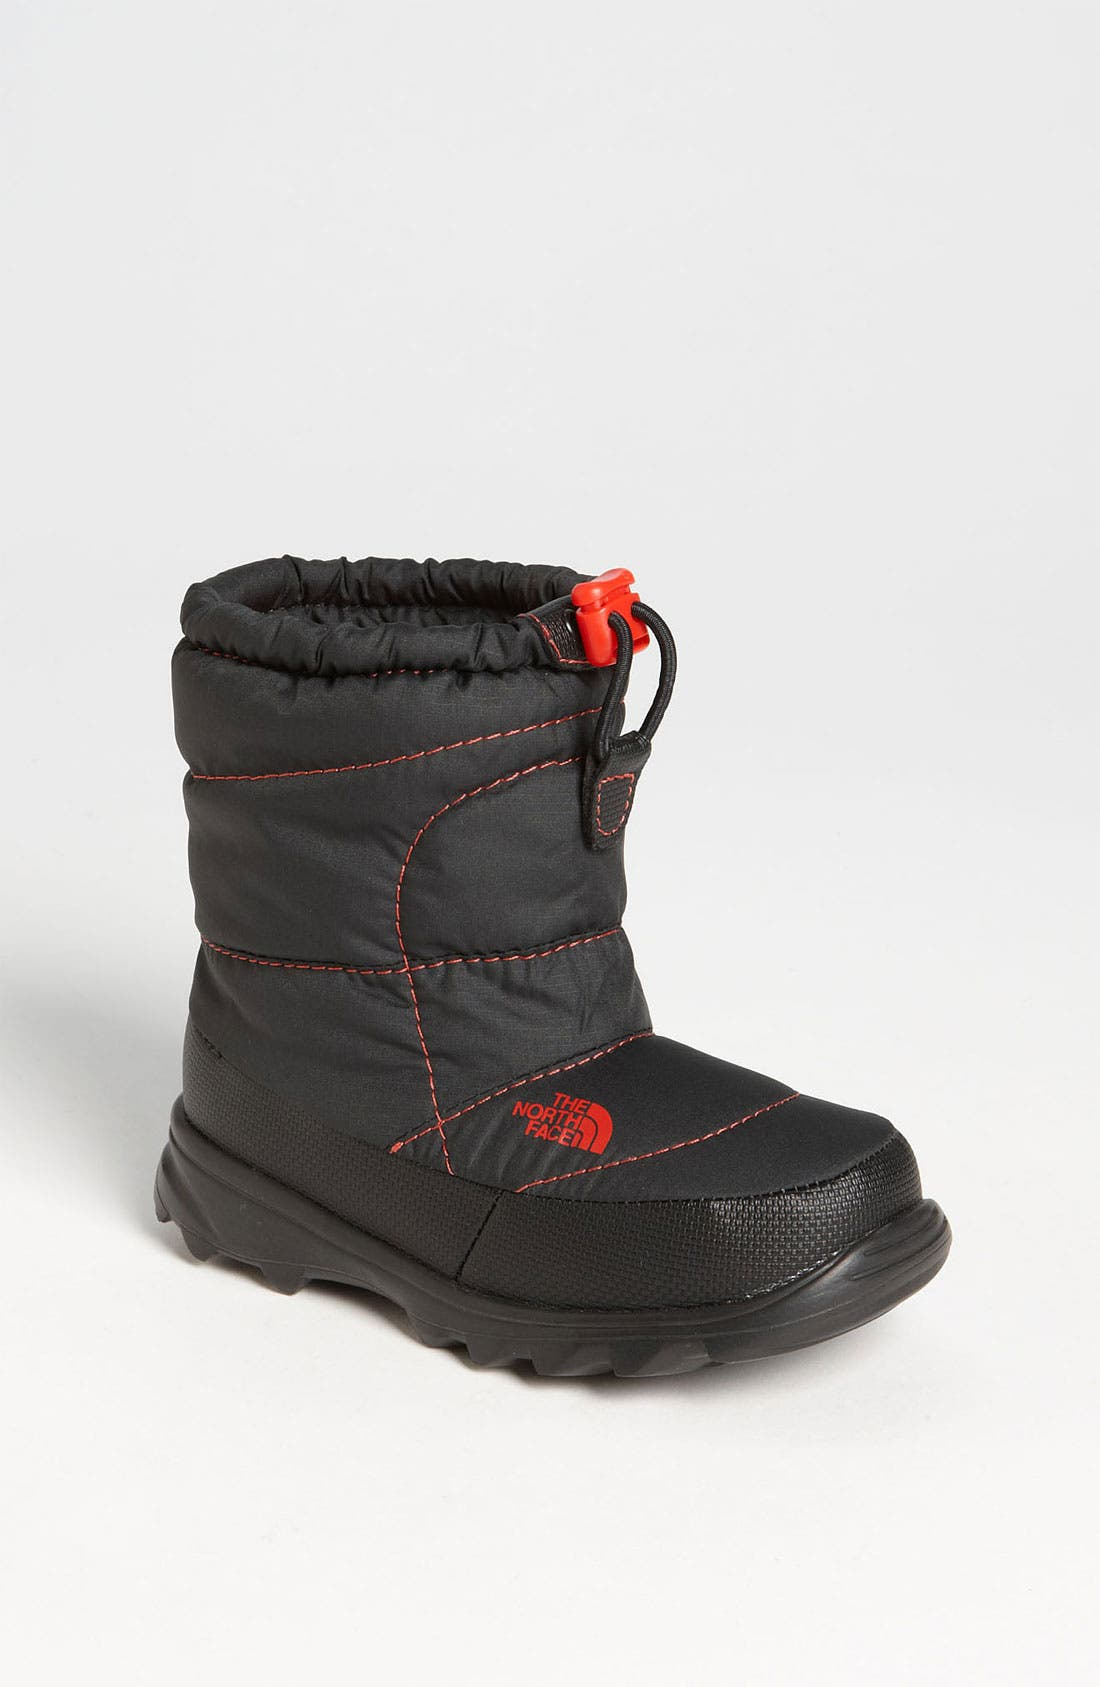 Alternate Image 1 Selected - The North Face 'Nuptse® II' Boot (Walker & Toddler)